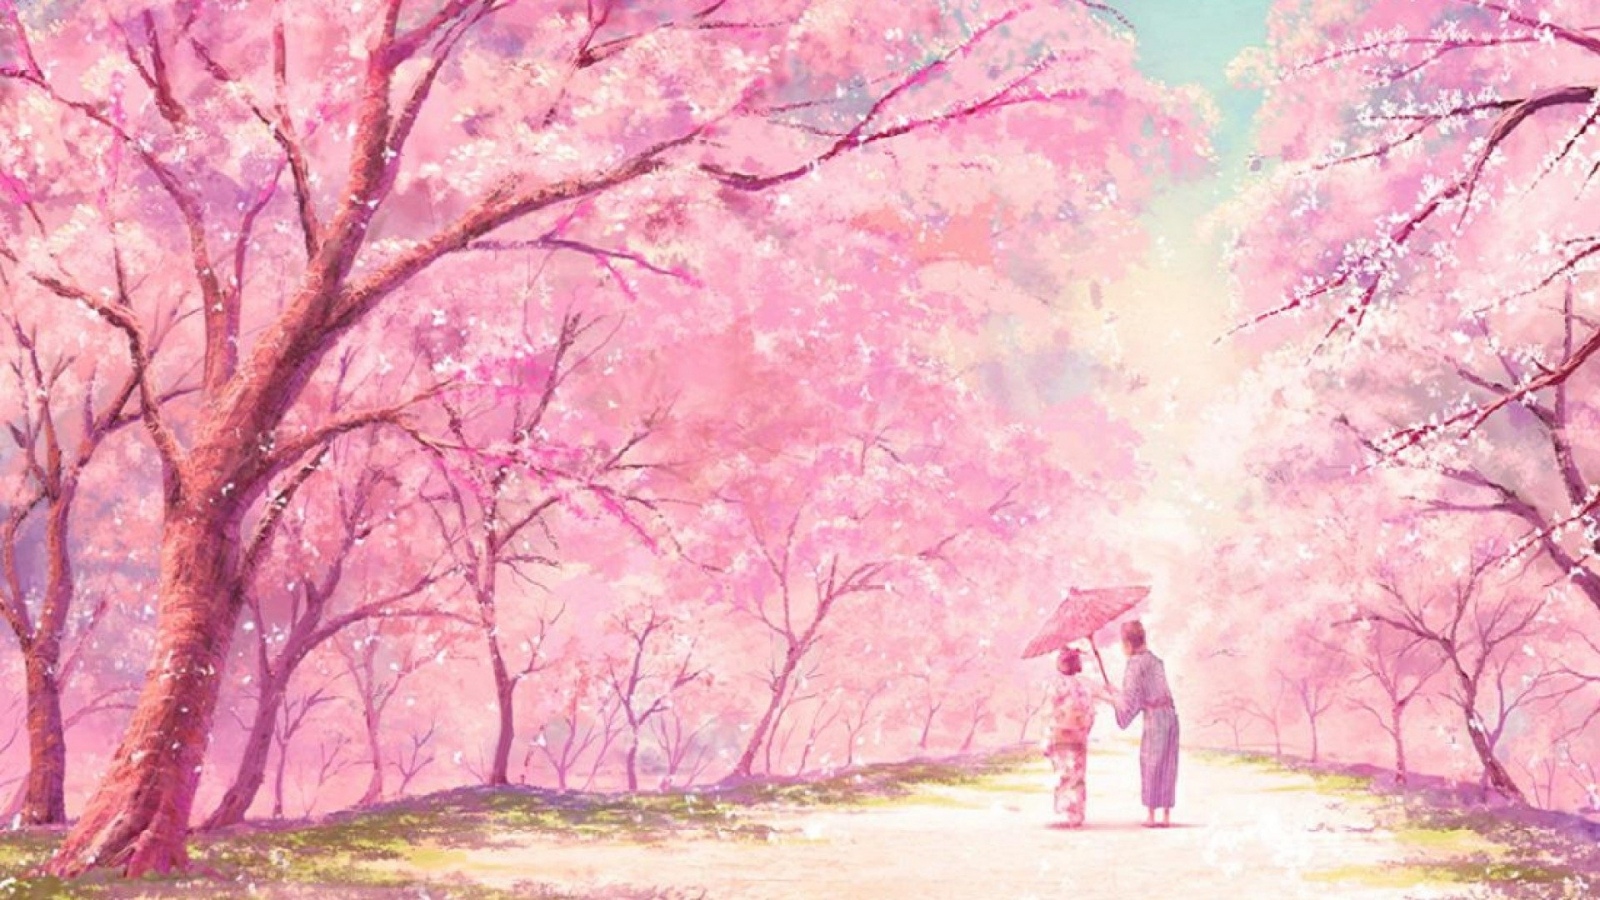 Pastel Pink Desktop Wallpaper Posted By Ryan Simpson